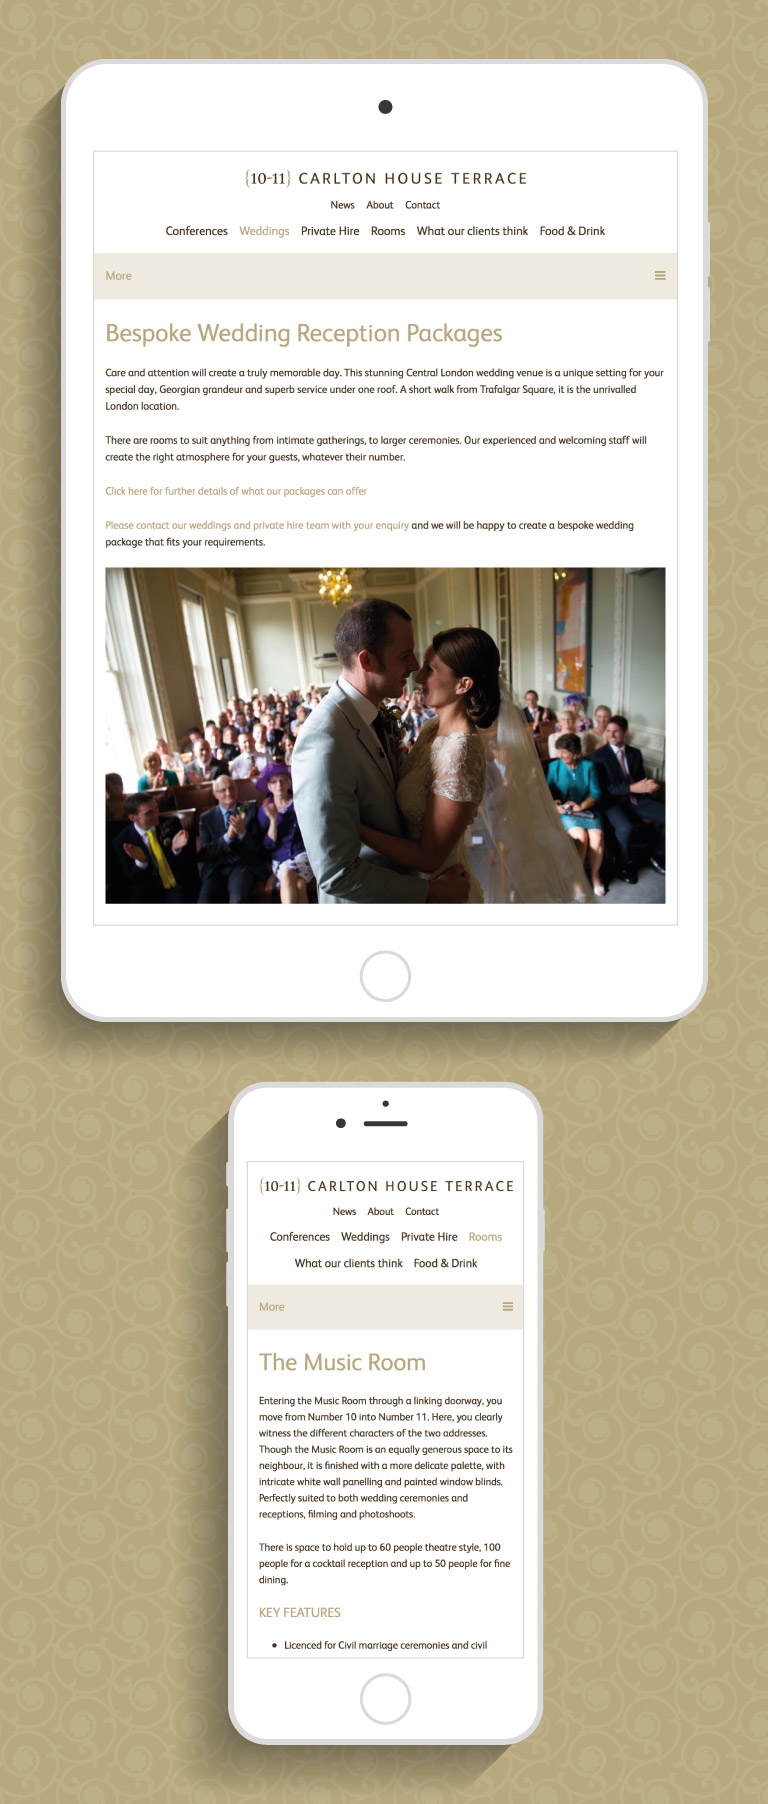 The 10-11 Carlton House Terrace website on an iPad and iPhone - mobile